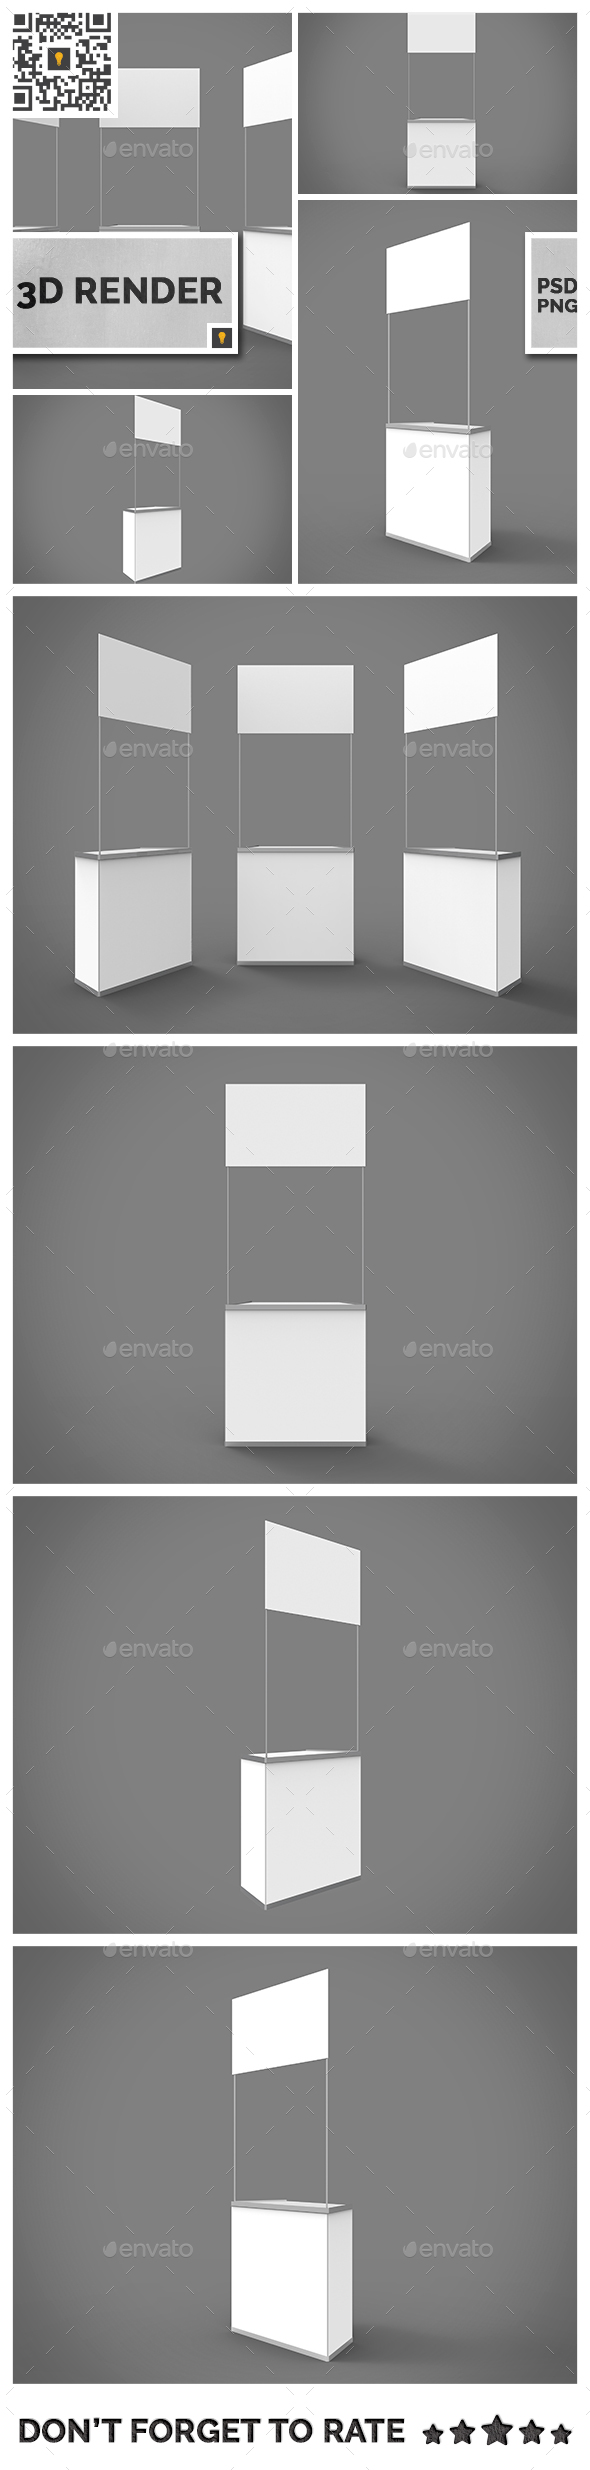 Promo Counter 3D Render - Objects 3D Renders